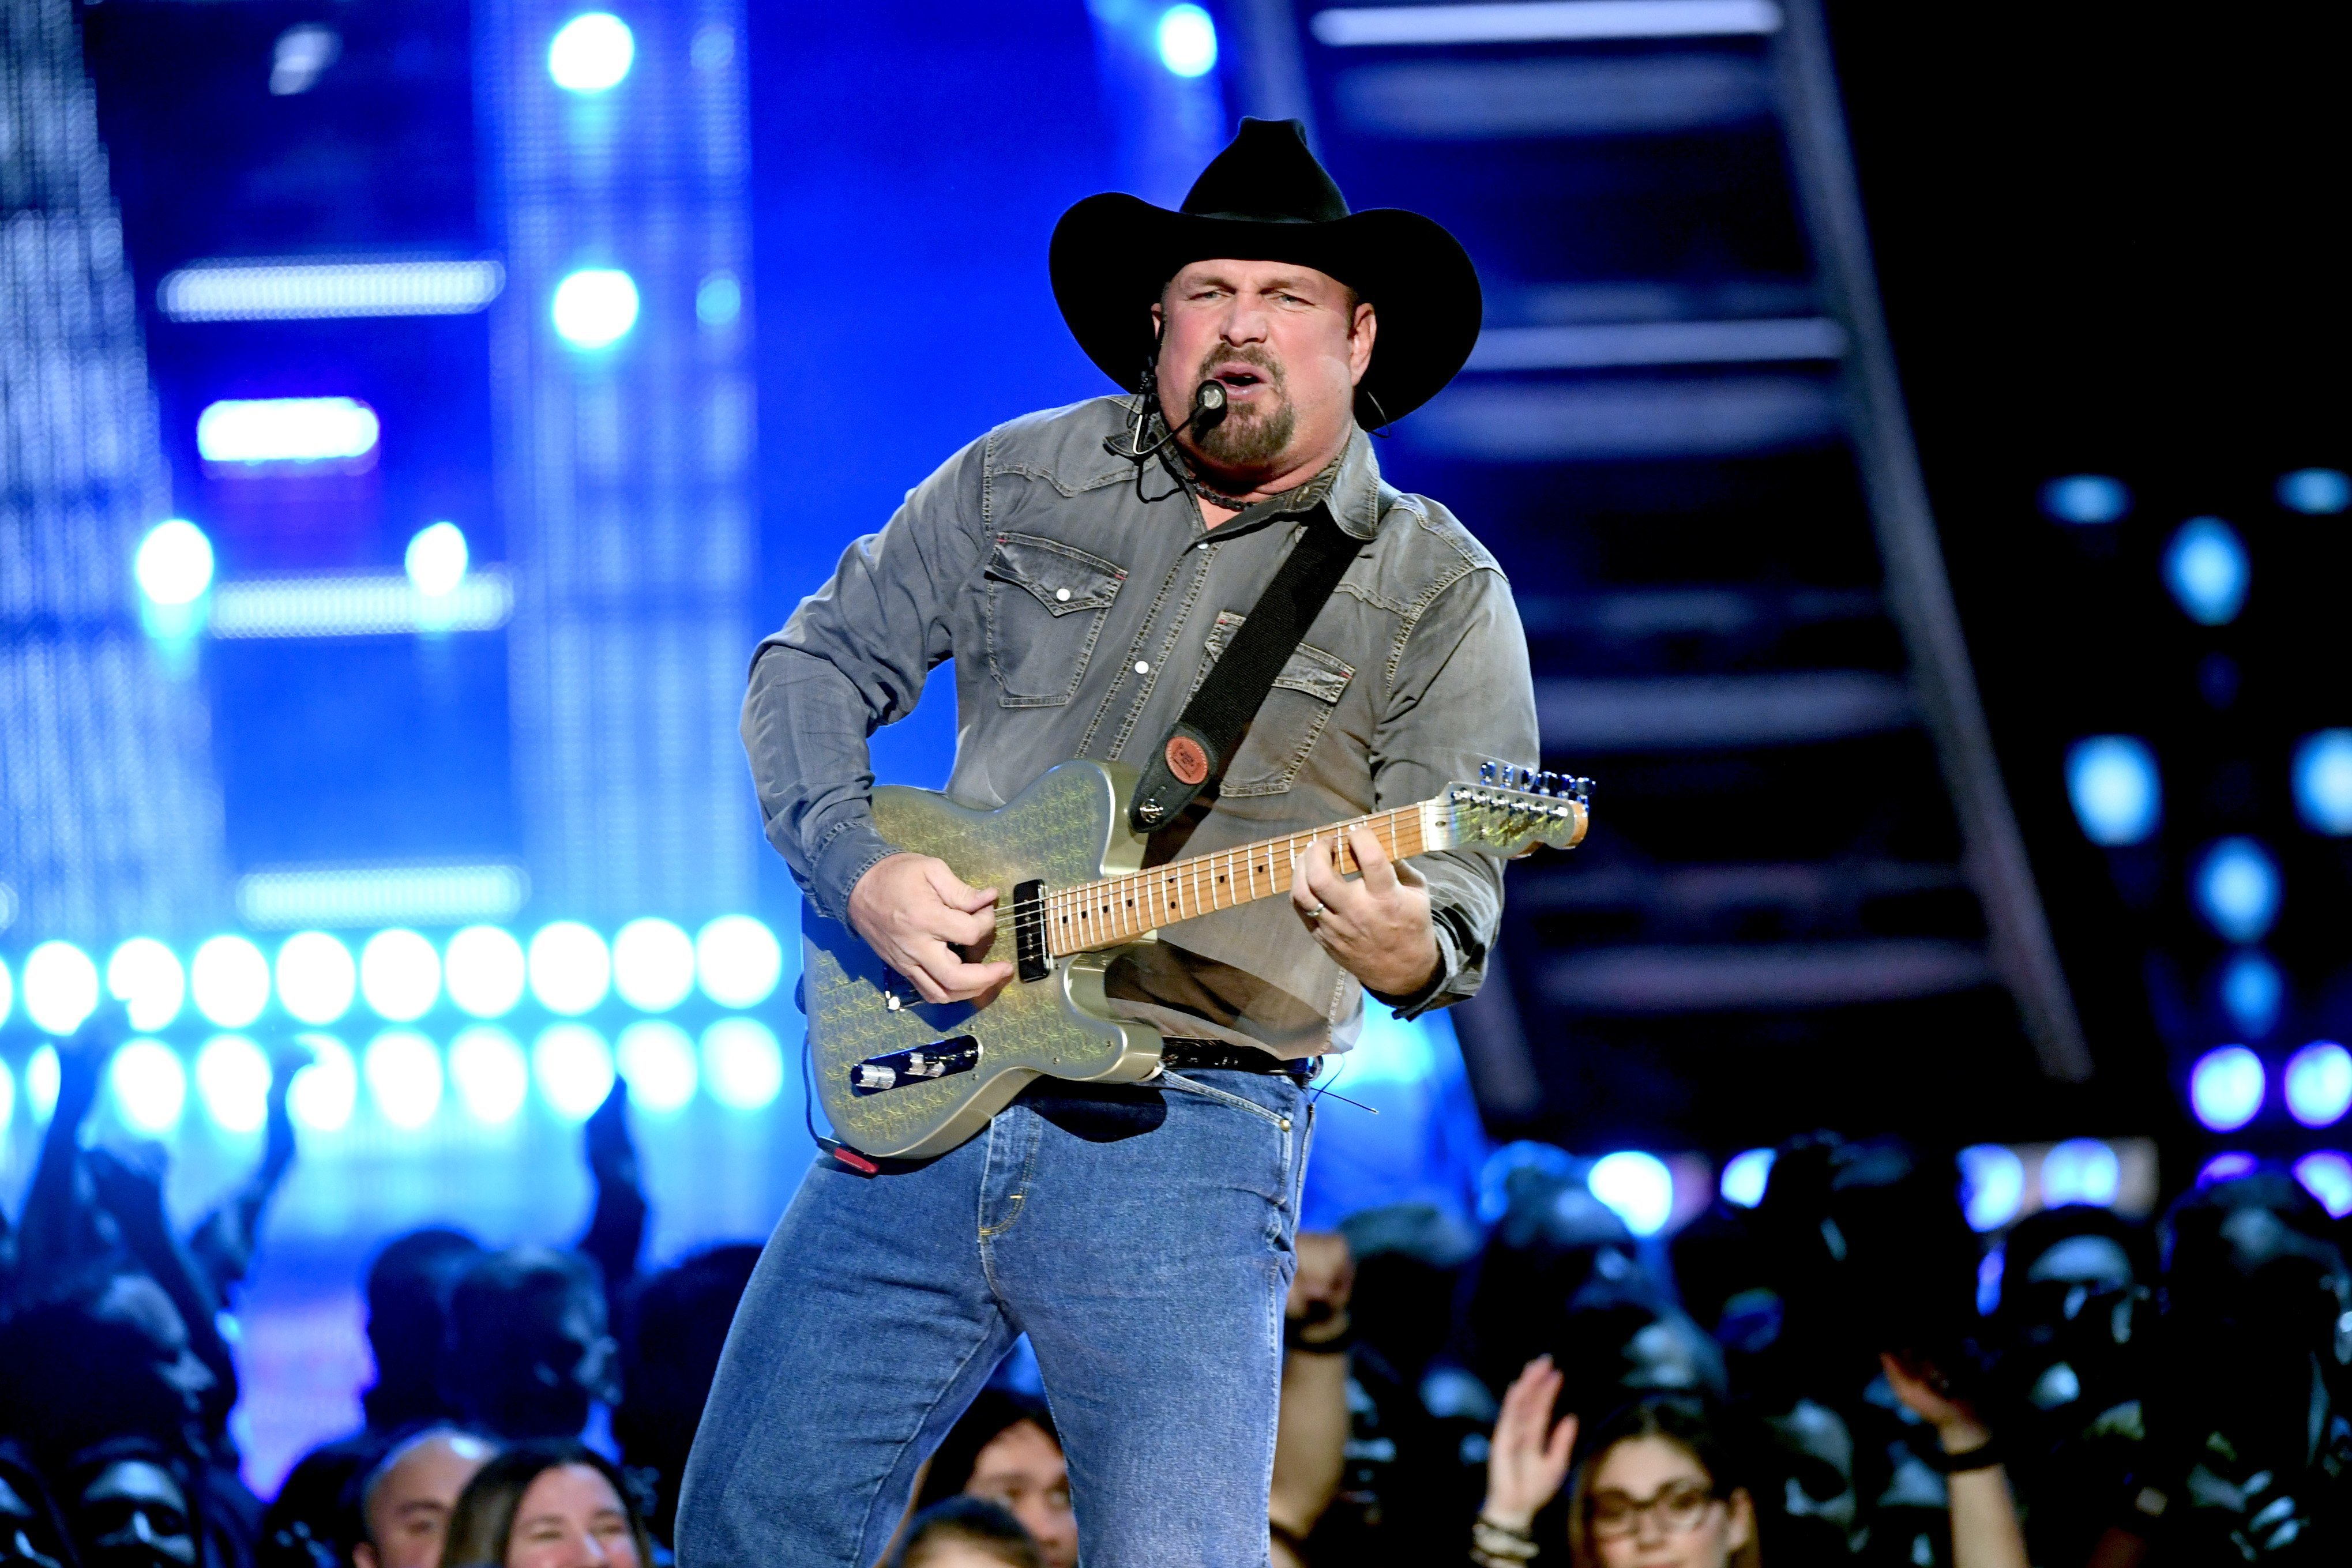 Garth Brooks performs at the iHeartRadio Music Awards in Los Angeles, California on March 14, 2019 | Photo: Getty Images